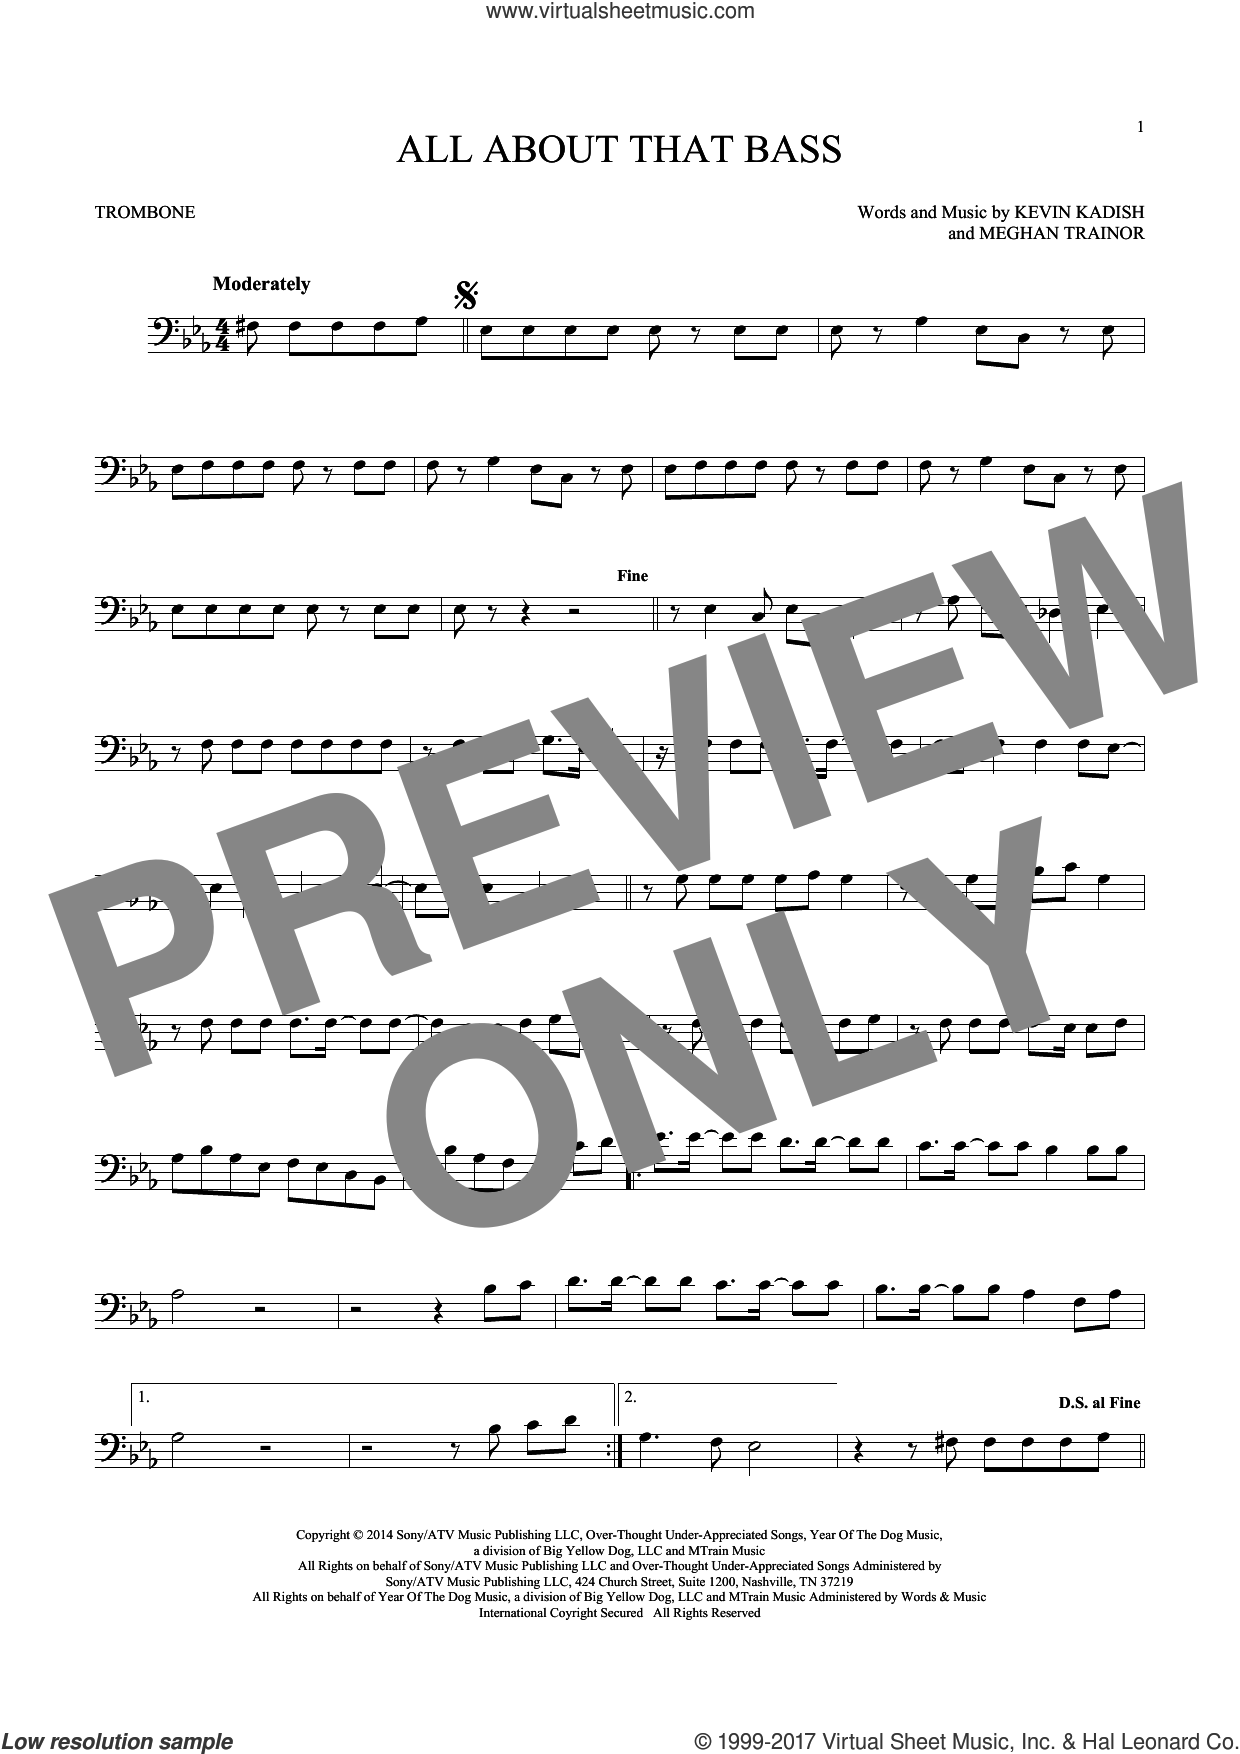 All About That Bass sheet music for trombone solo by Meghan Trainor and Kevin Kadish, intermediate. Score Image Preview.